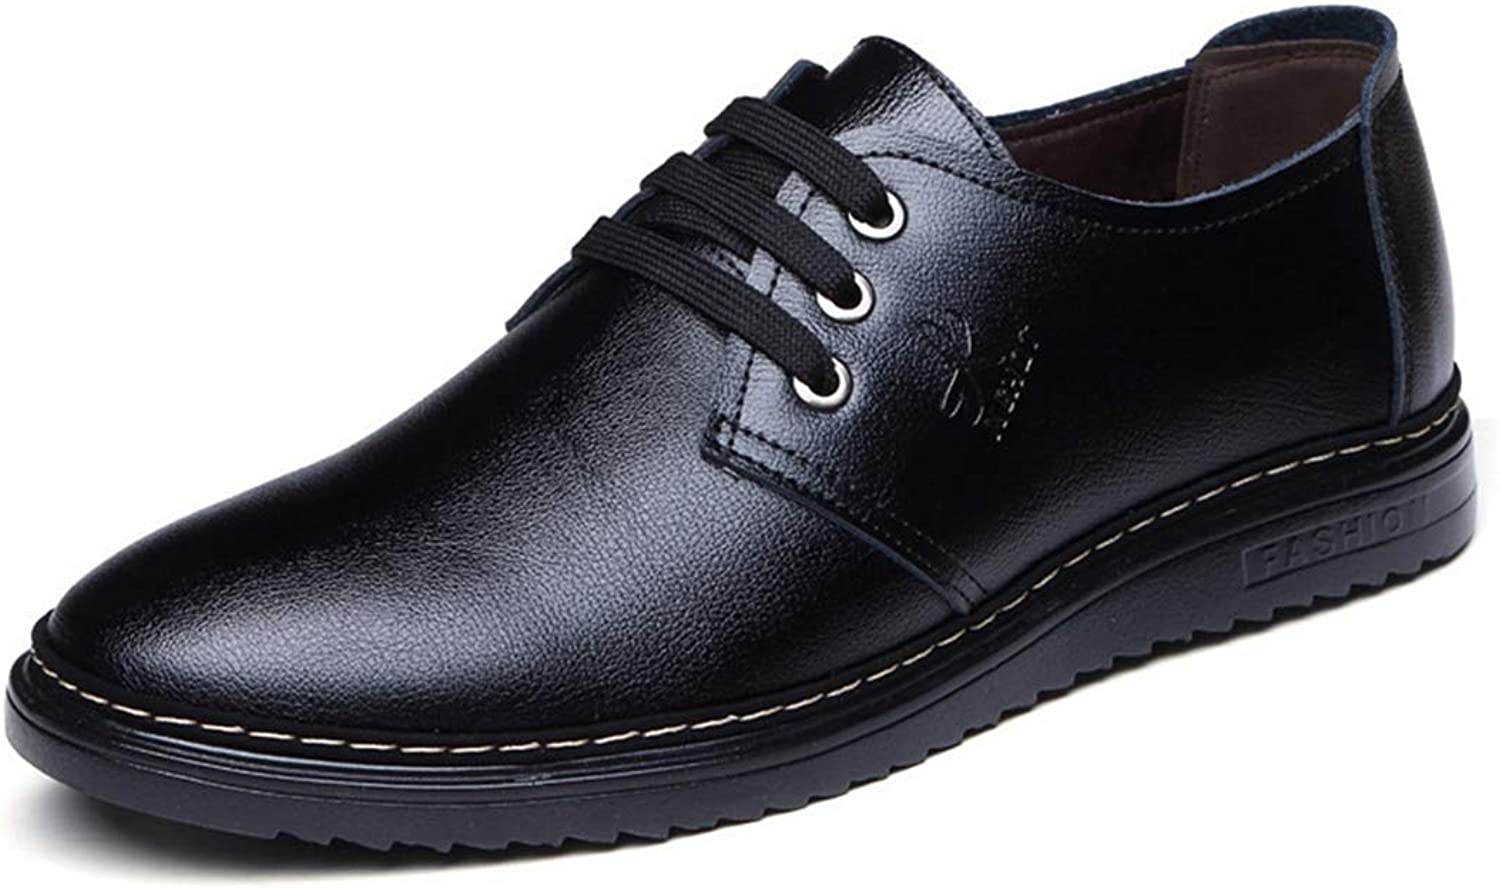 XINBONG Men's Formal shoes Lace Up Warm Black Brown Oxford shoes